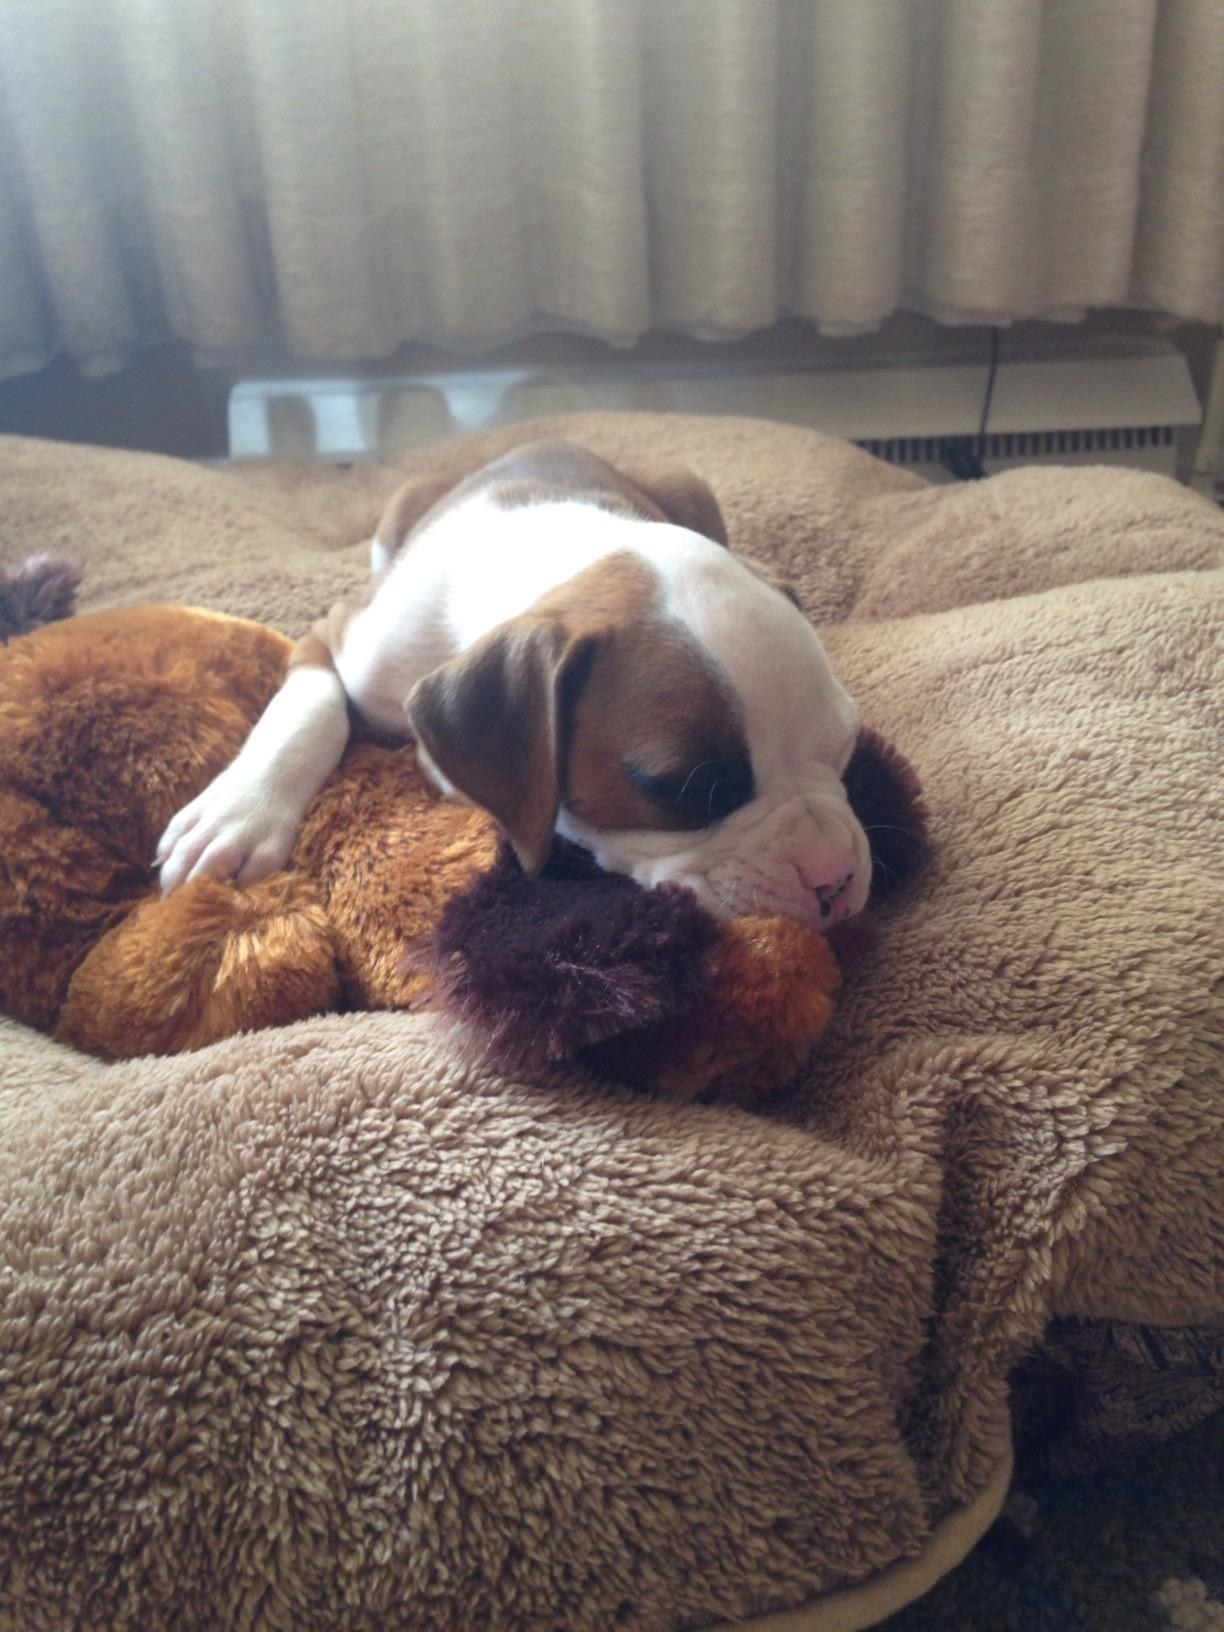 a puppy laying on top of the stuffed puppy